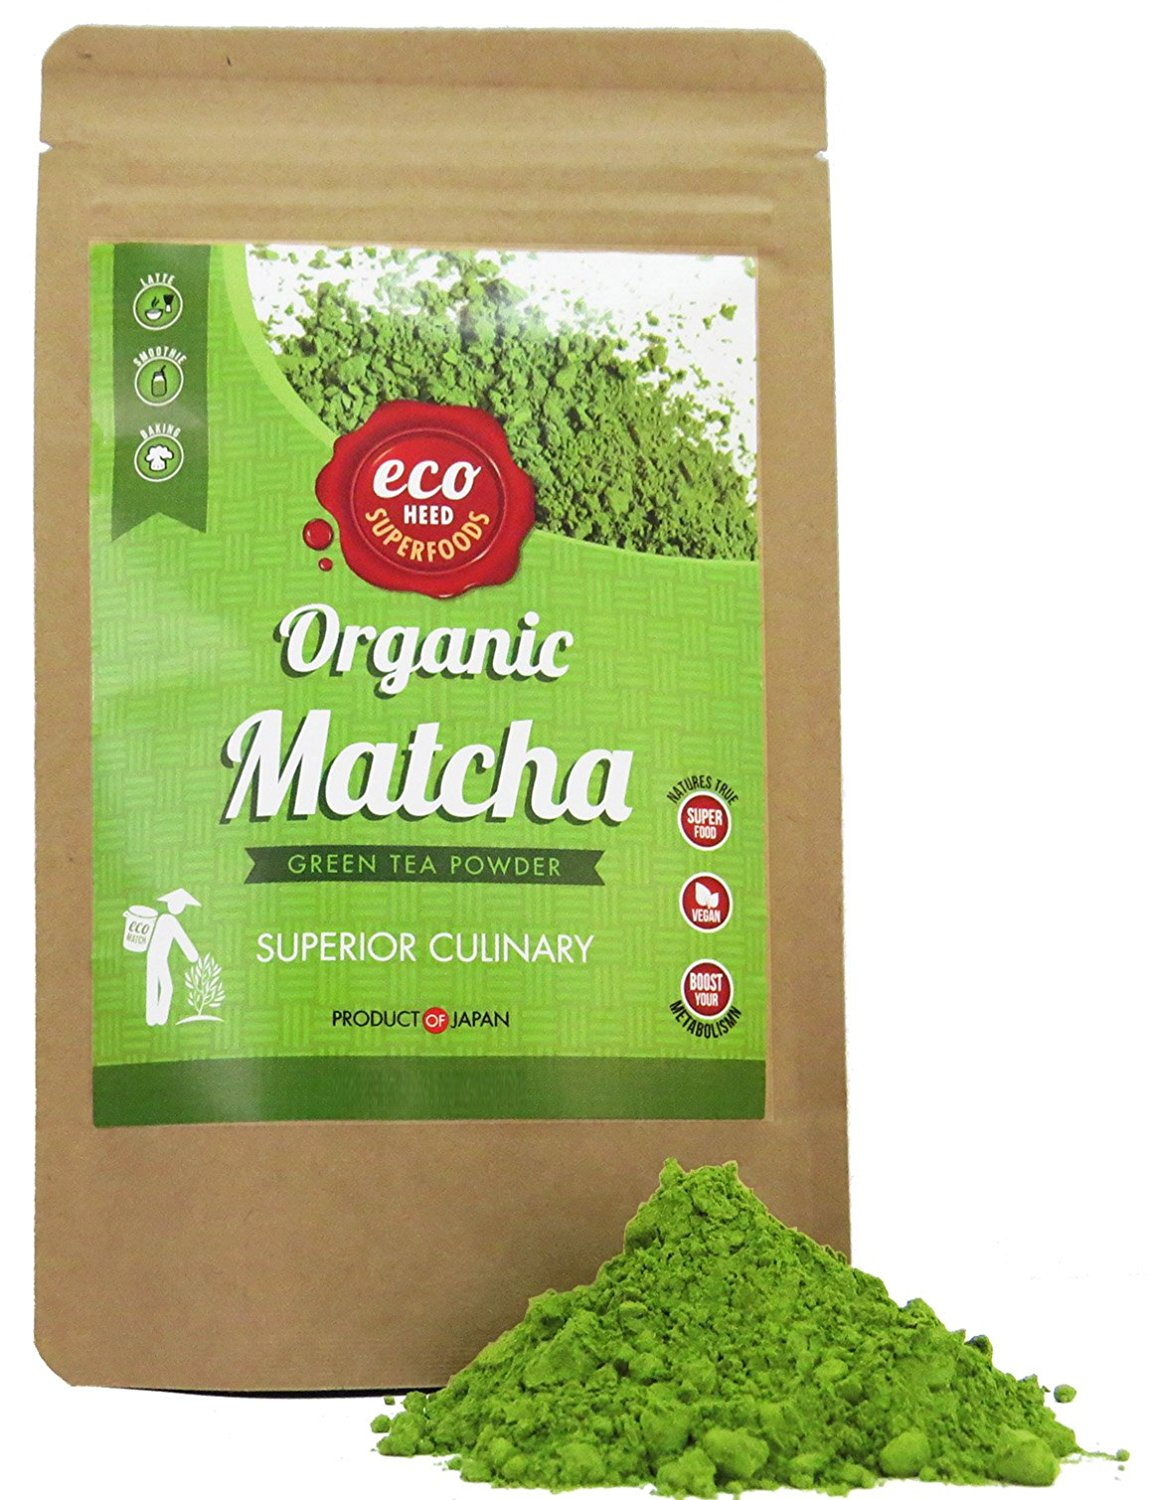 Matcha Green Tea Powder - Superior Culinary - USDA Organic From Japan -Natural Energy & Focus Booster Packed With Antioxidants. Matcha Tea For Mixing In Lattes